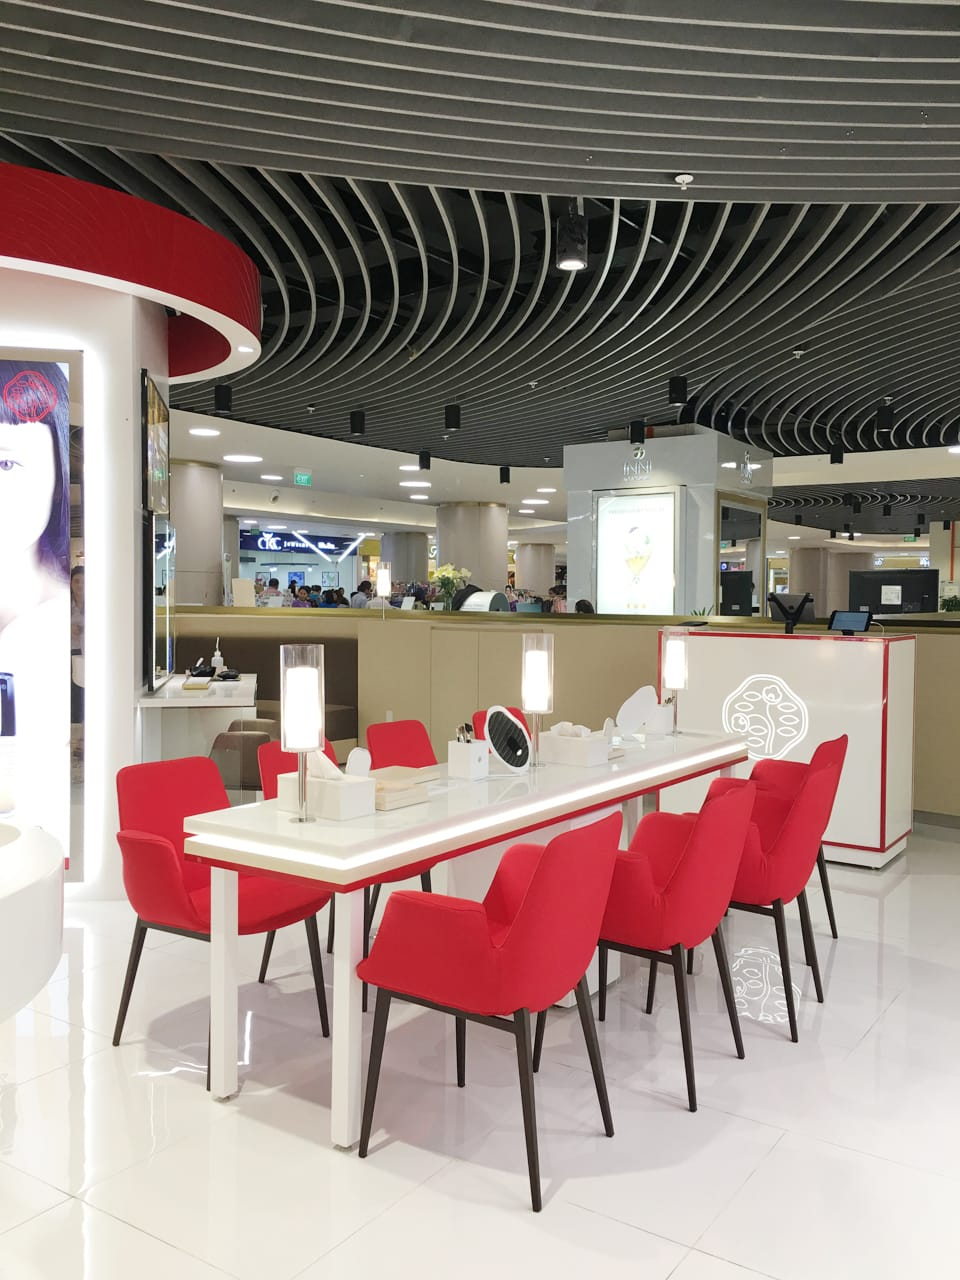 Fondue arm chair comfort design the chair table people - Shiseido singapore office ...